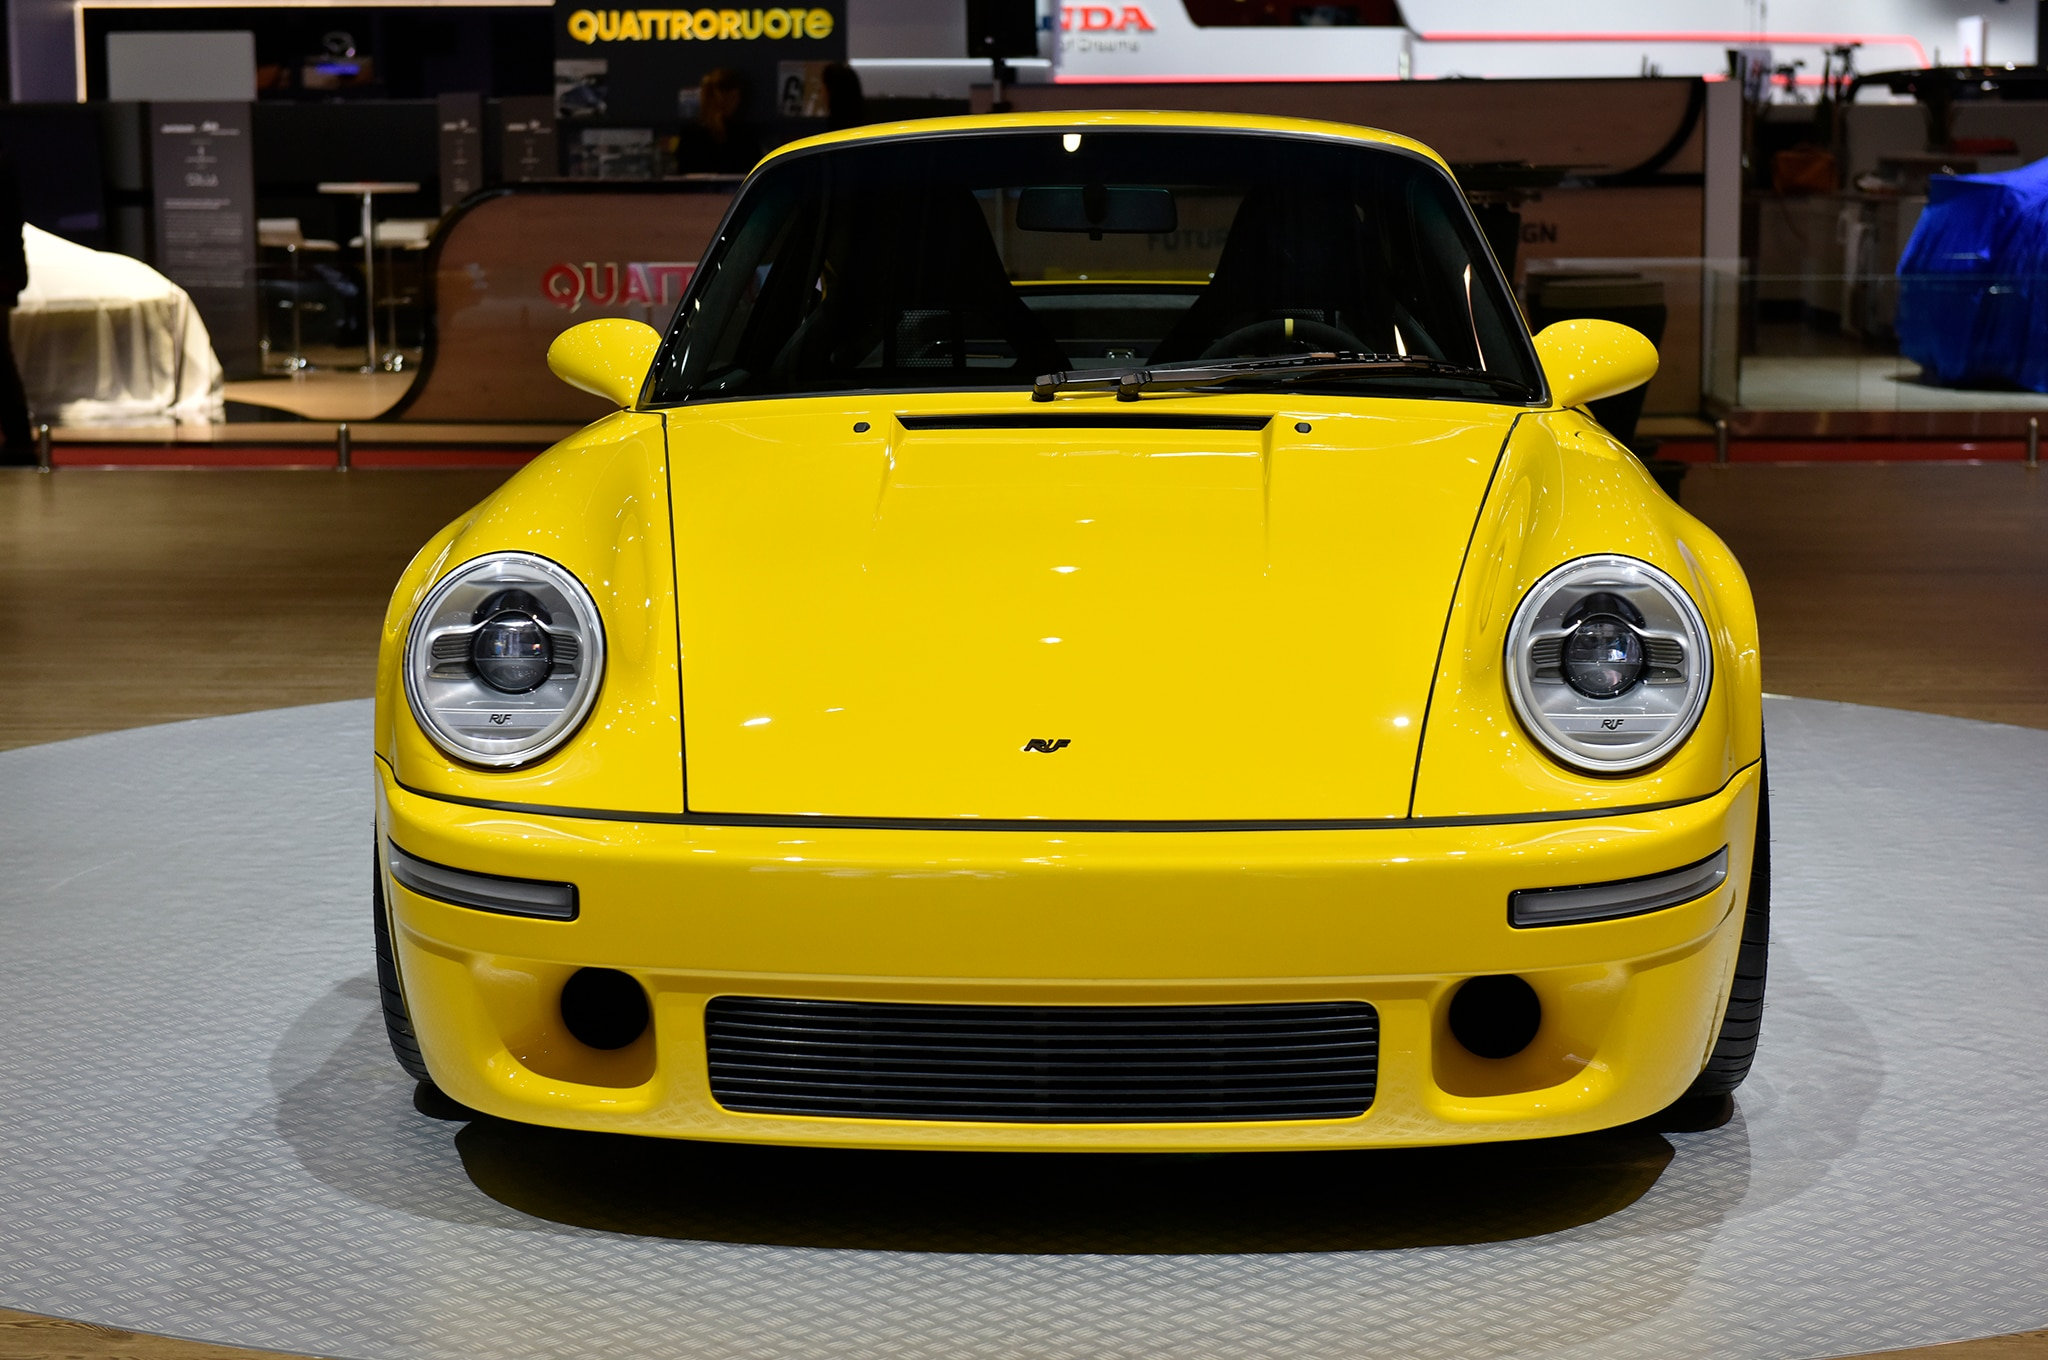 2017 Ruf Ctr Is A Clean Sheet 700 Horsepower Yellowbird